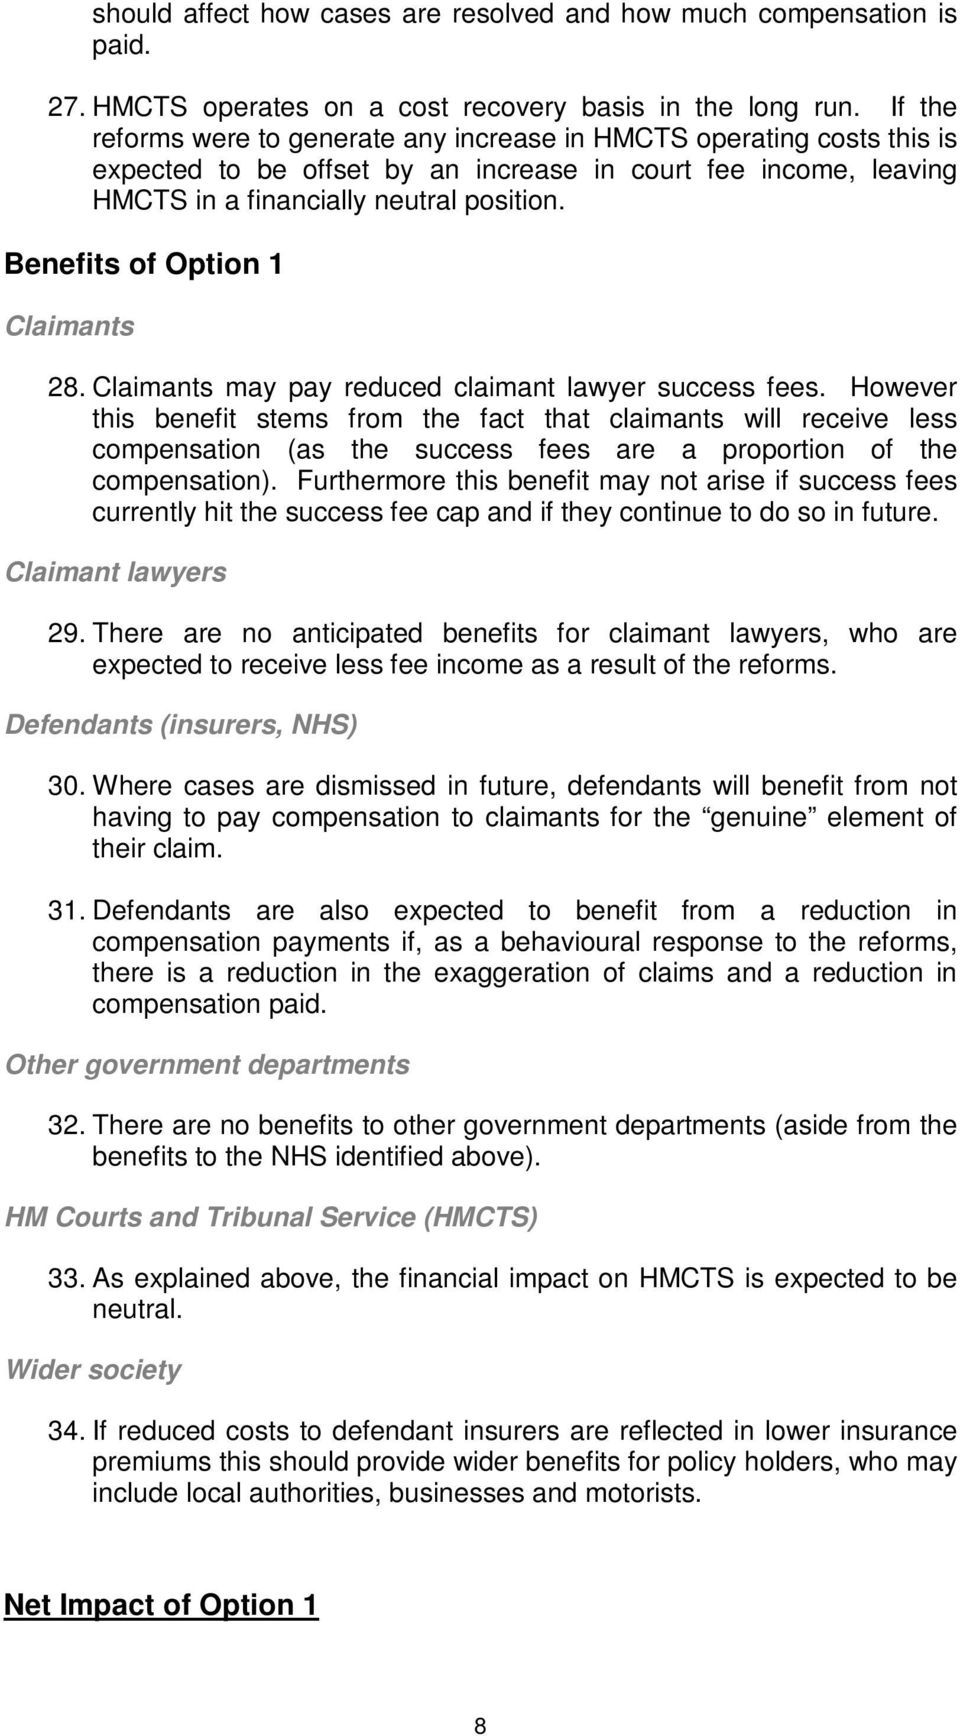 Benefits of Option 1 Claimants 28. Claimants may pay reduced claimant lawyer success fees.